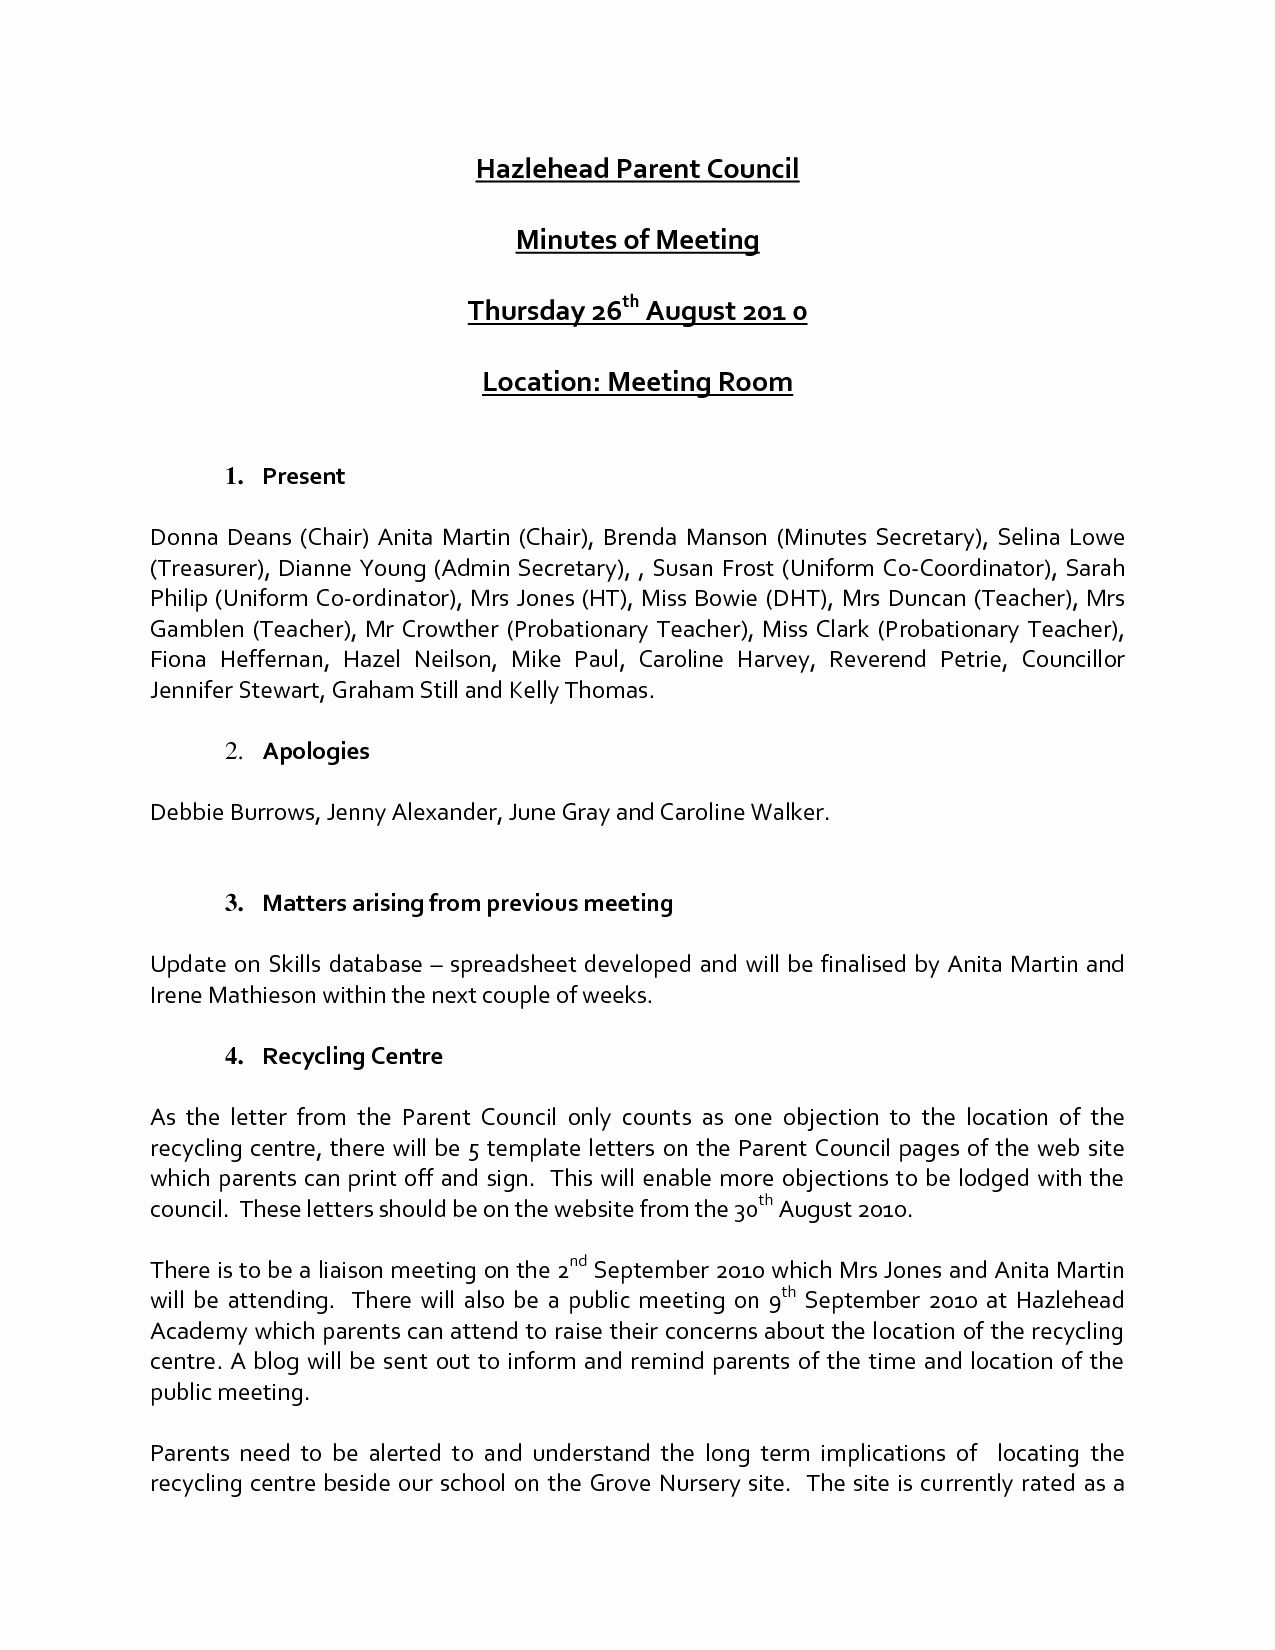 Sample Of Meeting Minutes format Awesome Agenda Word Template Example Mughals